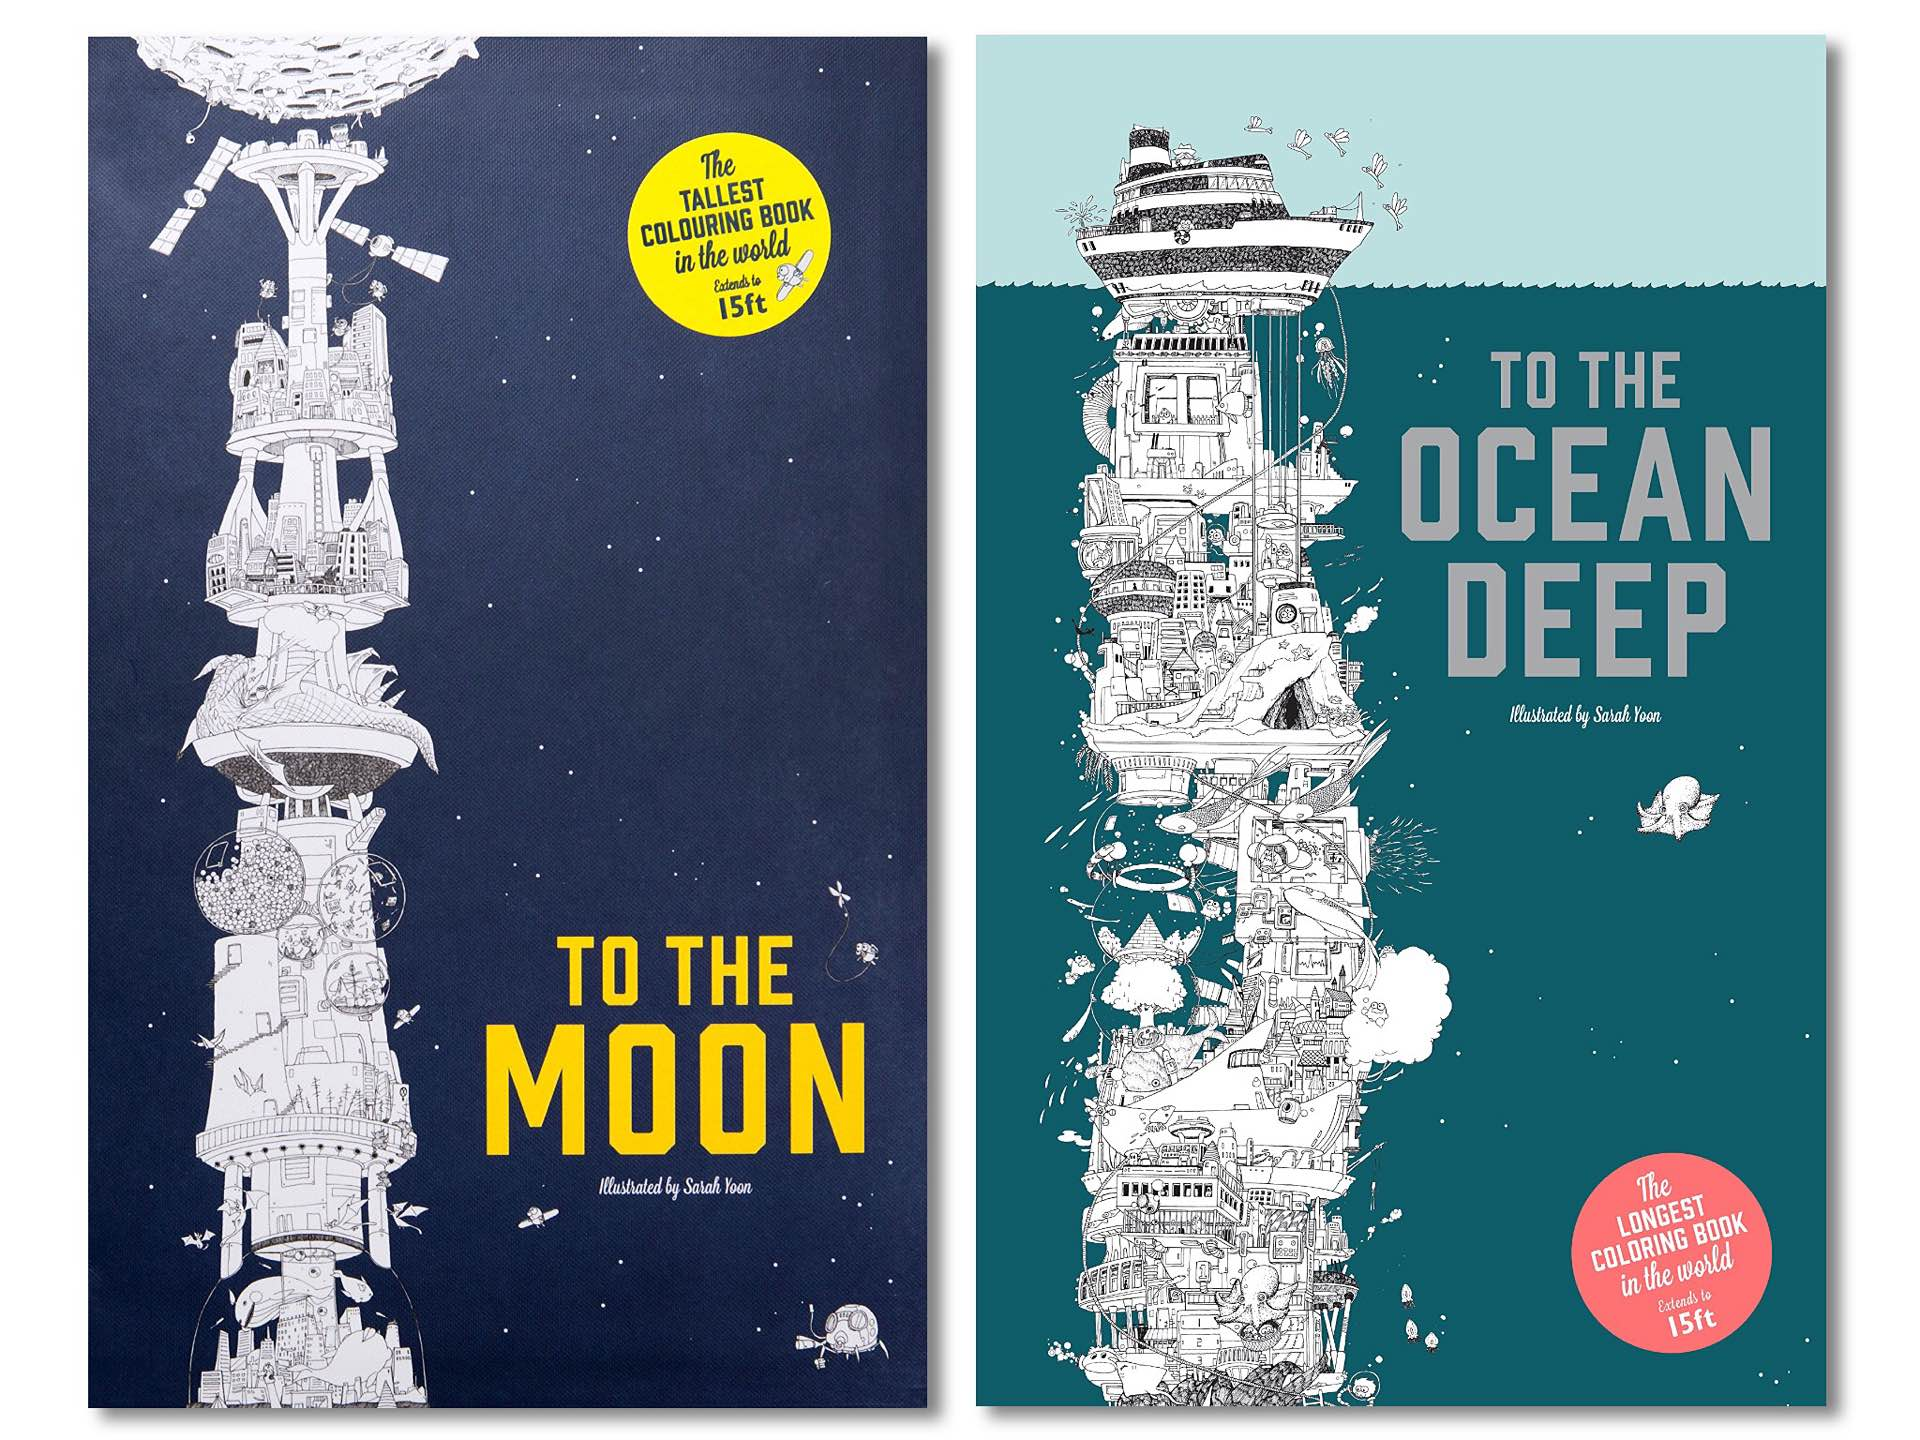 To The Moon and To The Ocean Deep